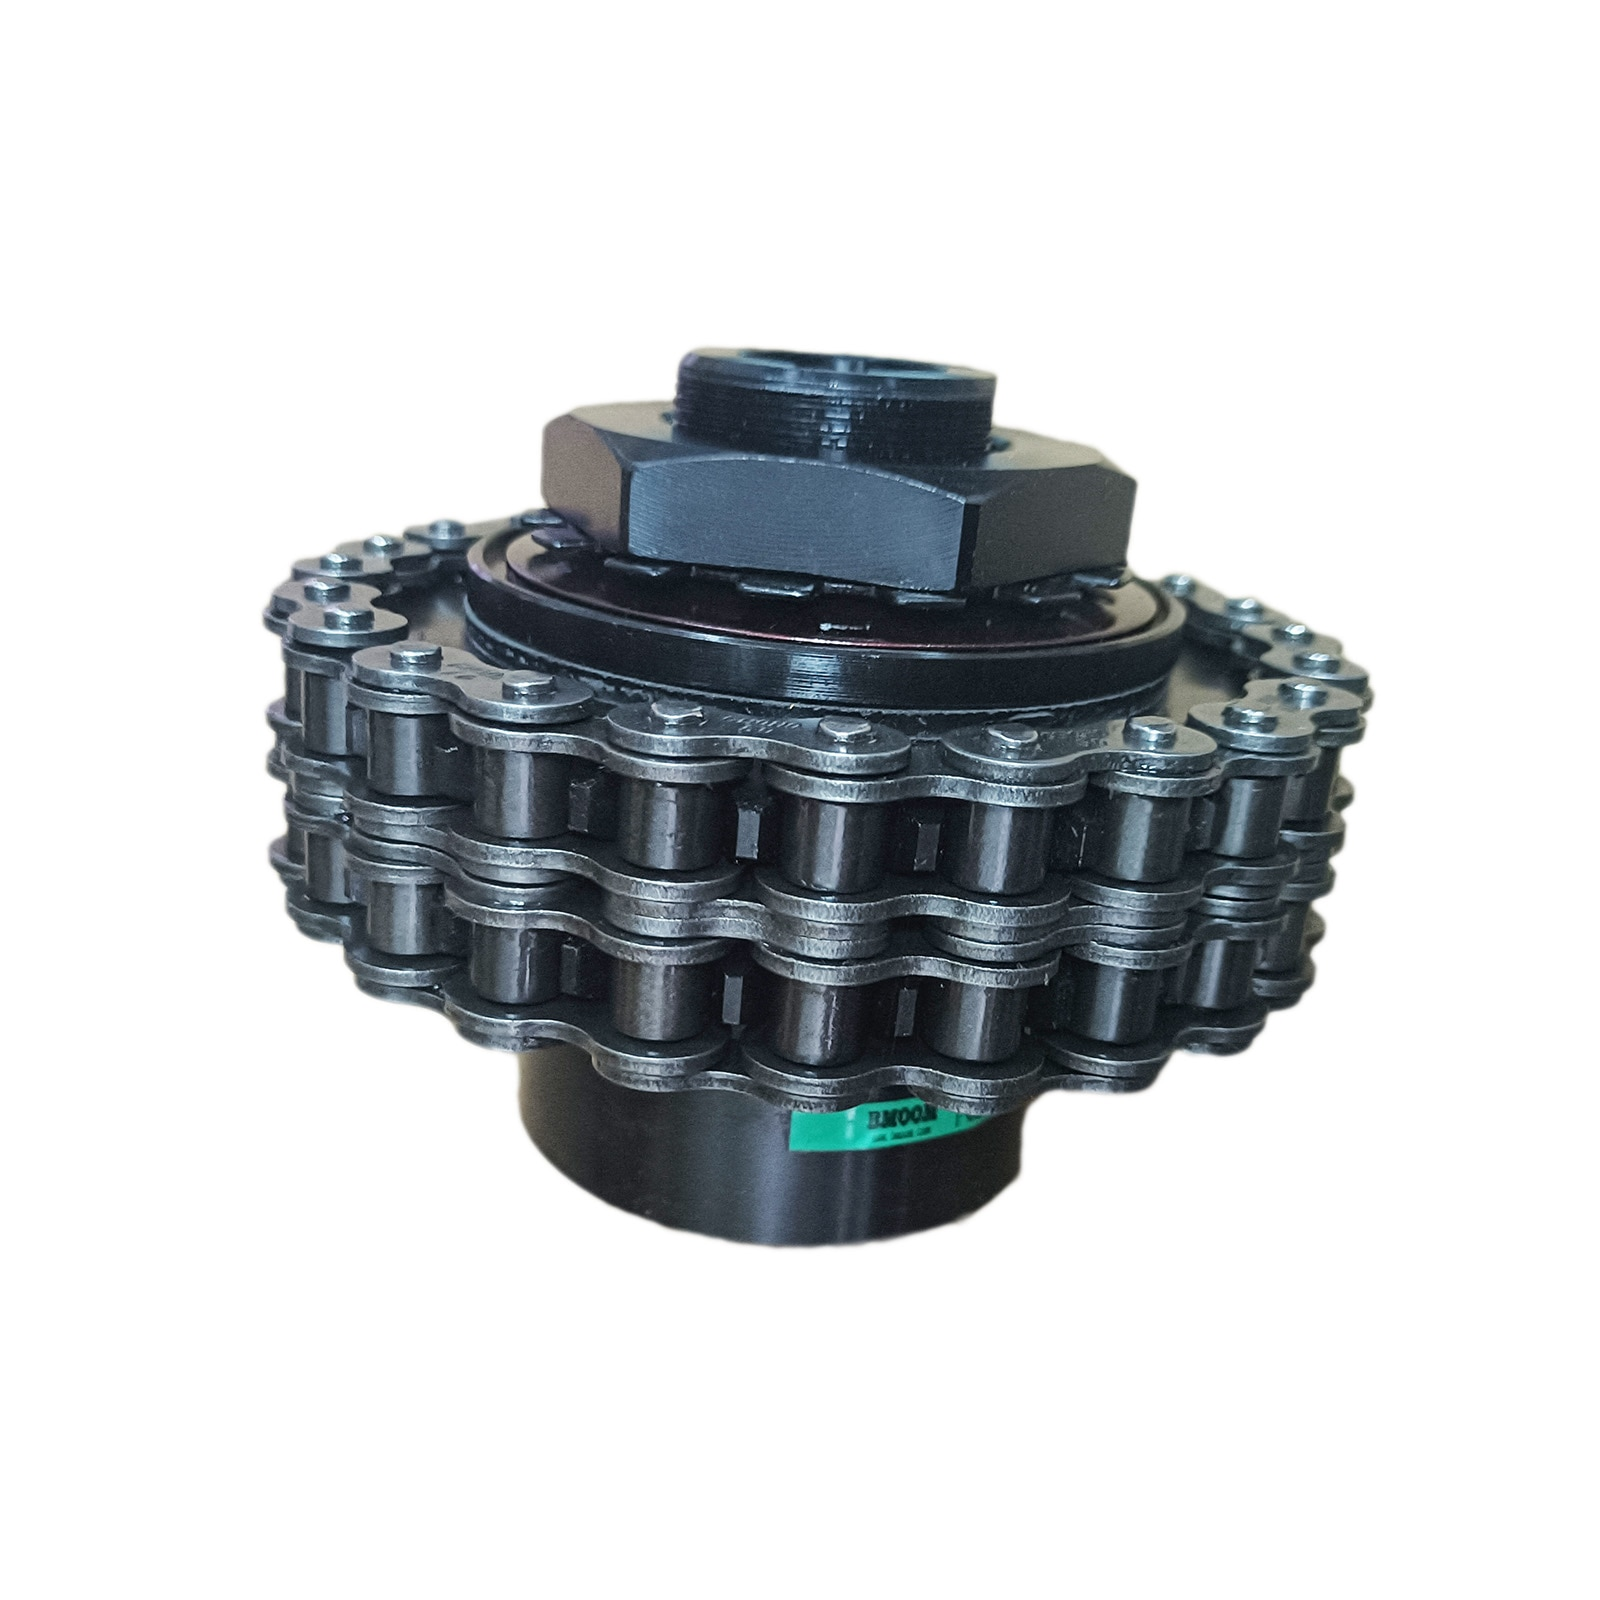 Economical Shaft-to-shaft connection Torque Limiter Overload Protector overload clutch chain coupling torque limiters BML-T350